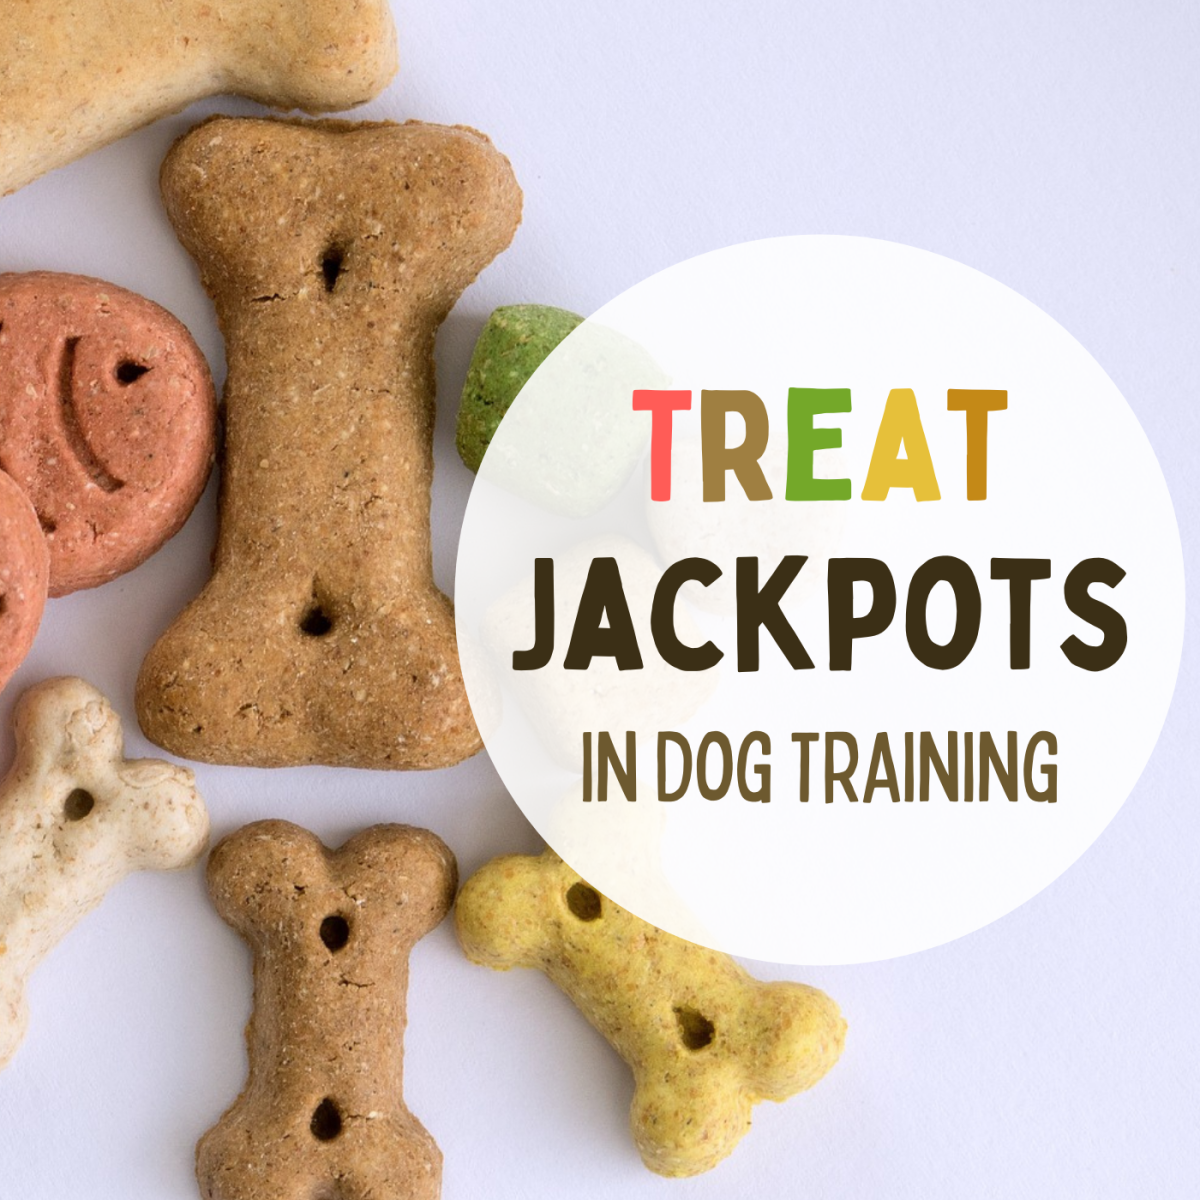 """Offering a """"jackpot"""" of treats in dog training can be an impactful reward, as long as it's done correctly."""